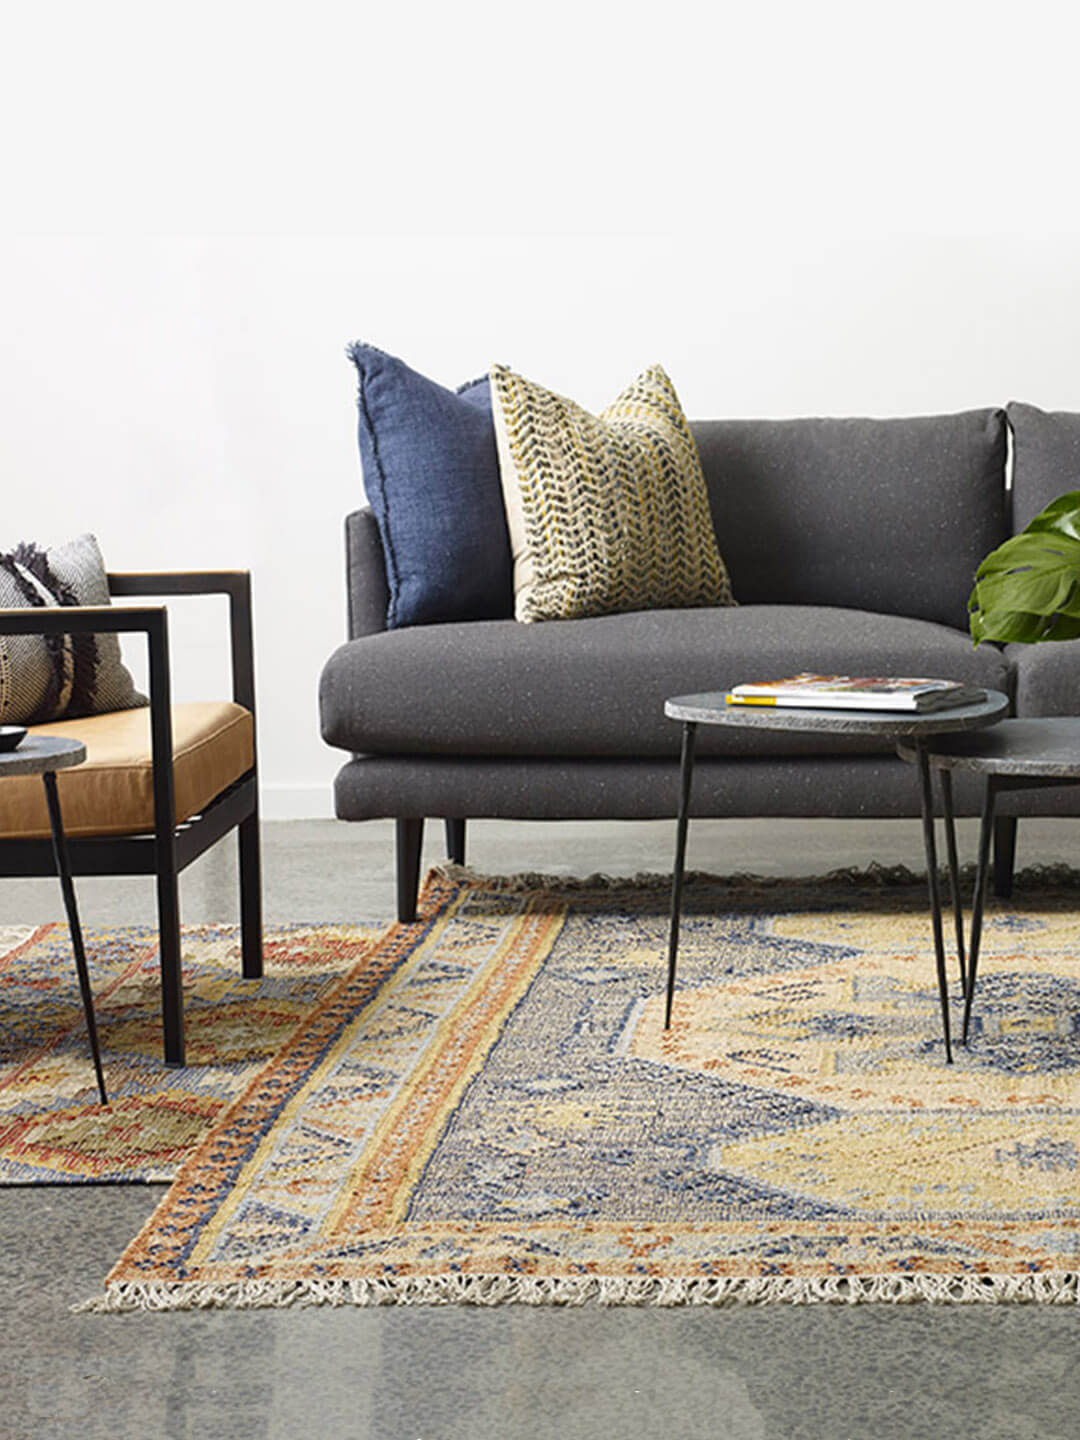 boho-detail-floor-rugs-perth-kilim-colourful-Stans-wool-jute